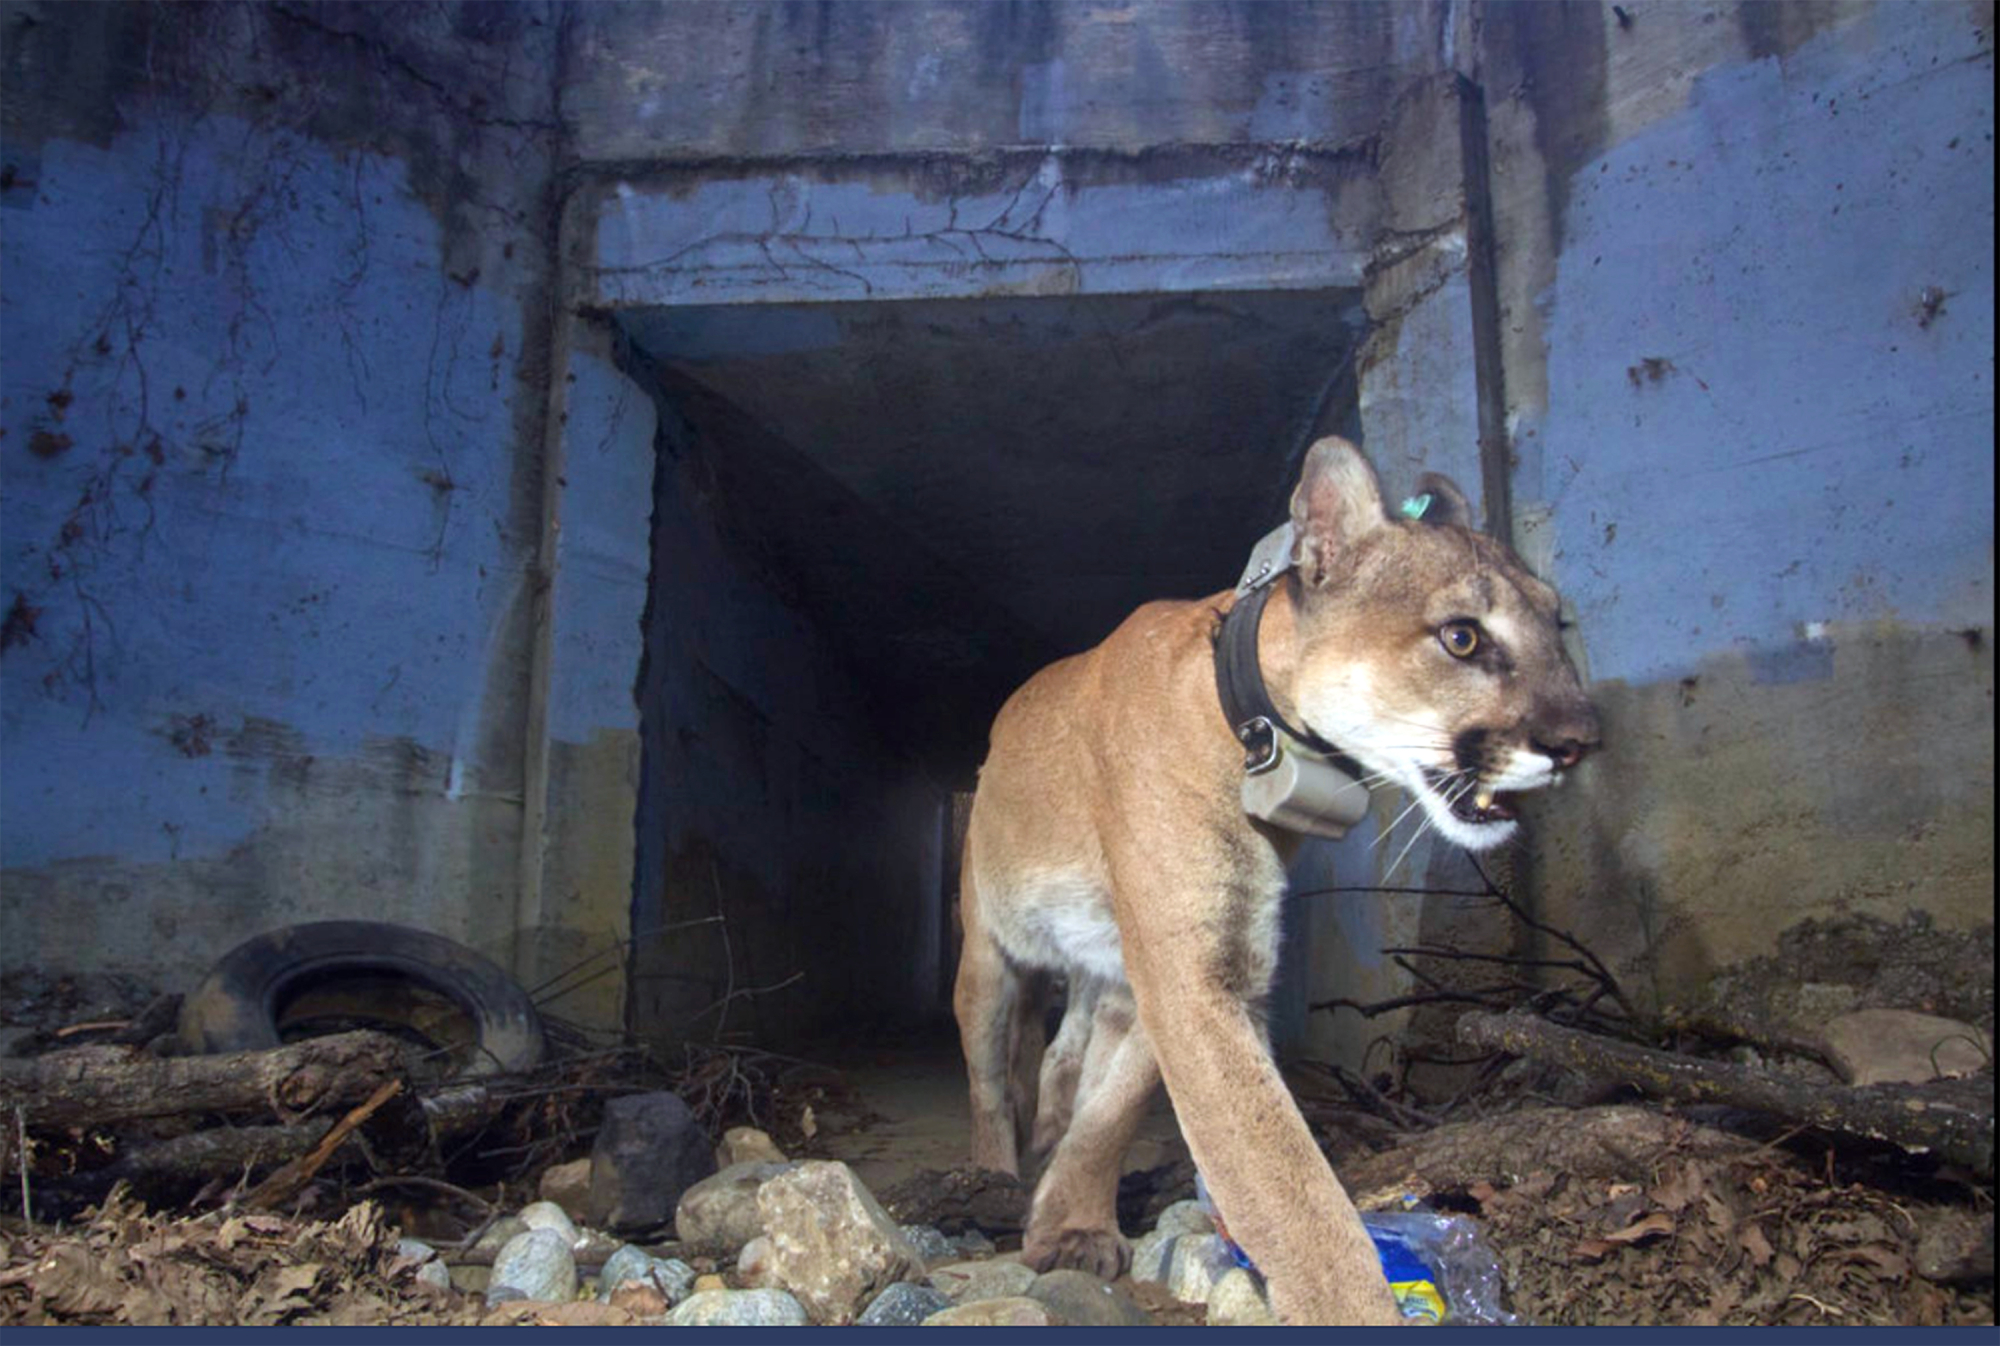 The mountain lion known as P-64 crosses Highway 101 in Agoura Hills, California, on May 22. | U.S. NATIONAL PARK SERVICE / VIA AP